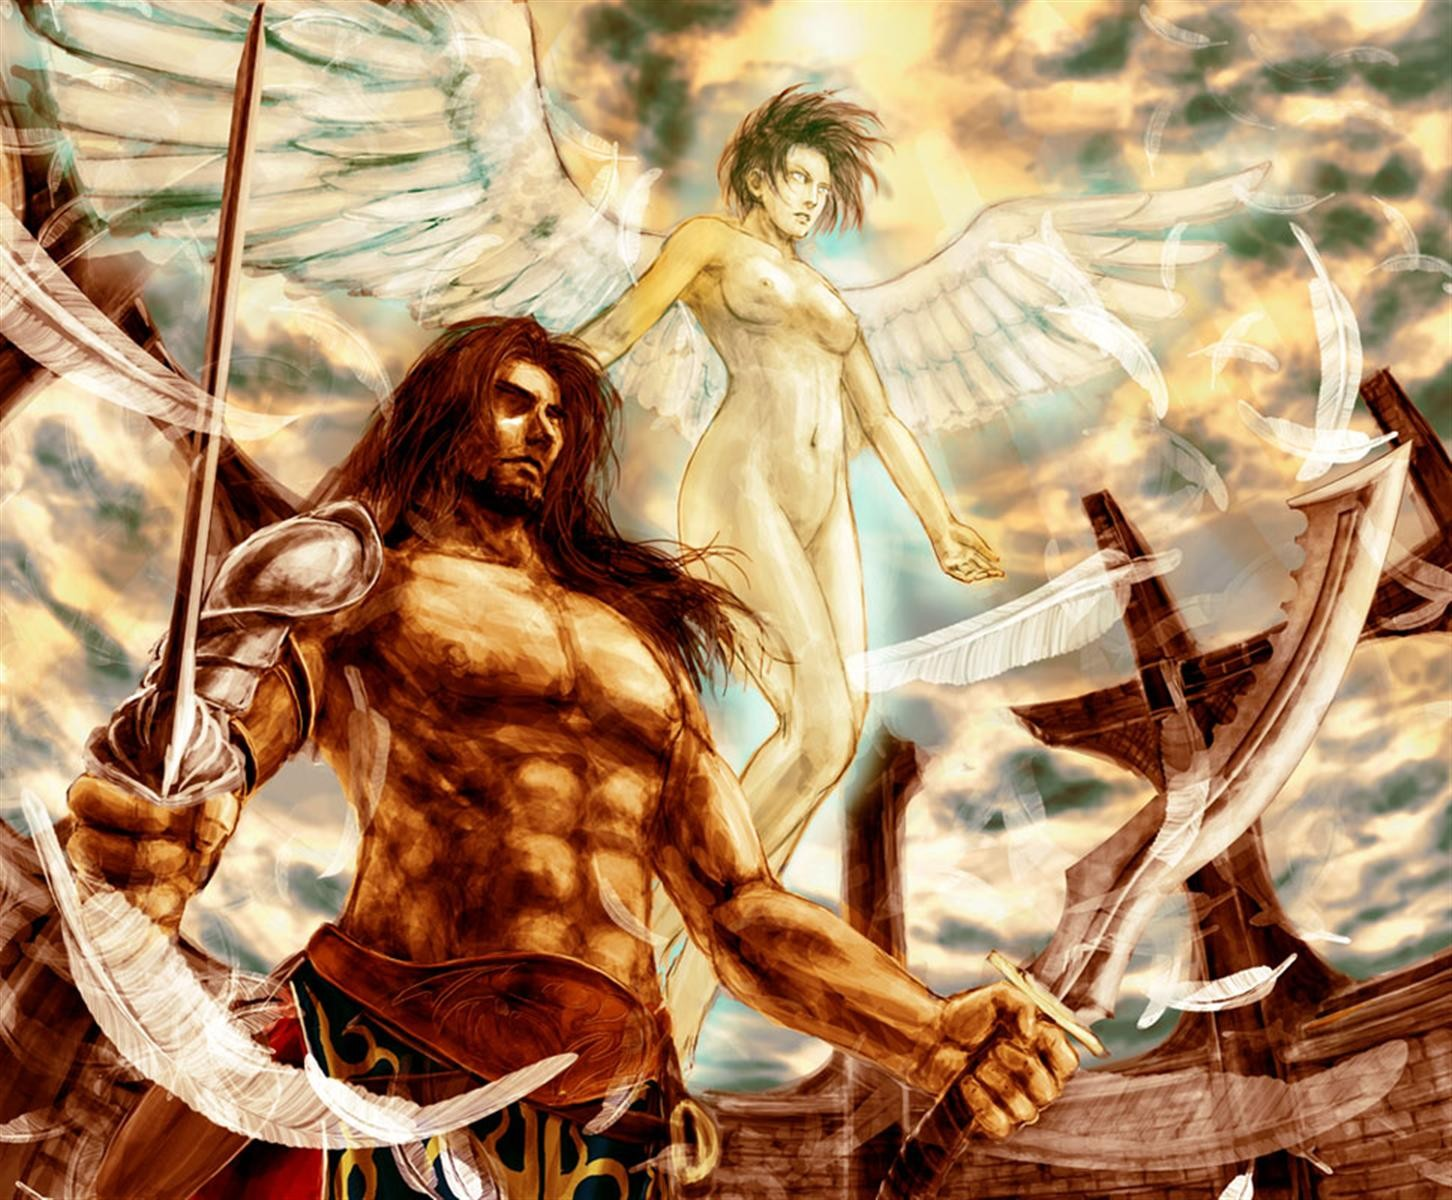 Naked women warriors and angels fantasy anime photo